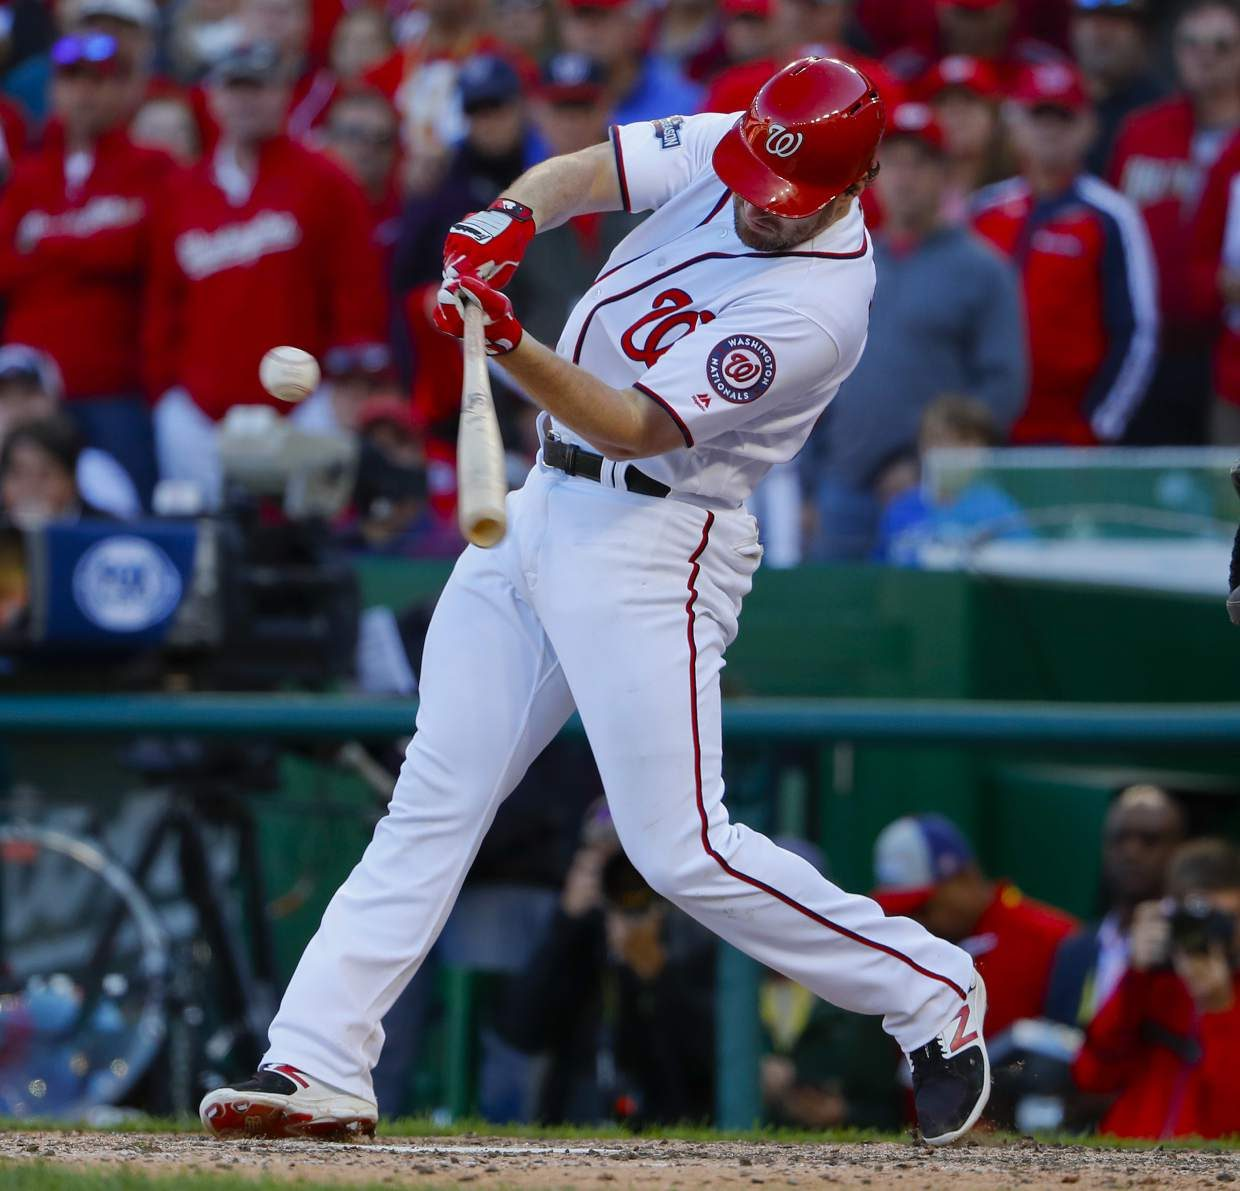 Washington Nationals' Daniel Murphy hits an RBI-single against the Los Angeles Dodgers during the seventh inning in Game 2 of baseball's National League Division Series at Nationals Park, Sunday, Oct. 9, 2016, in Washington. (AP Photo/Pablo Martinez Monsivais)